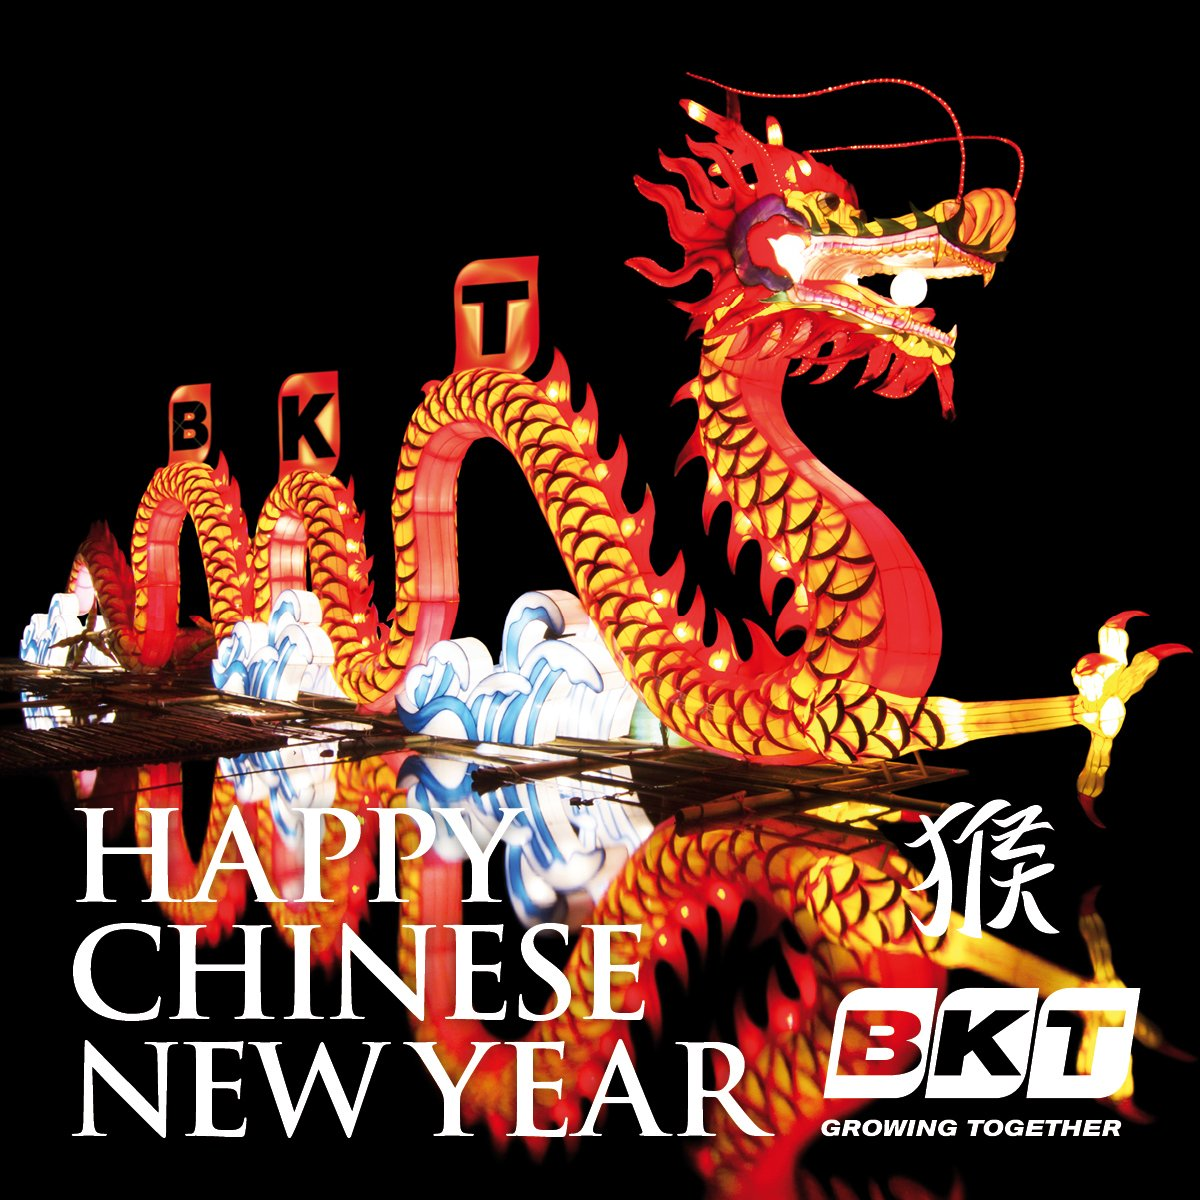 BKT wishes you good health, wealth and luck for the forthcoming year of the Monkey! #ChineseNewYear #yearofthemonkey https://t.co/txd4MgfSGu